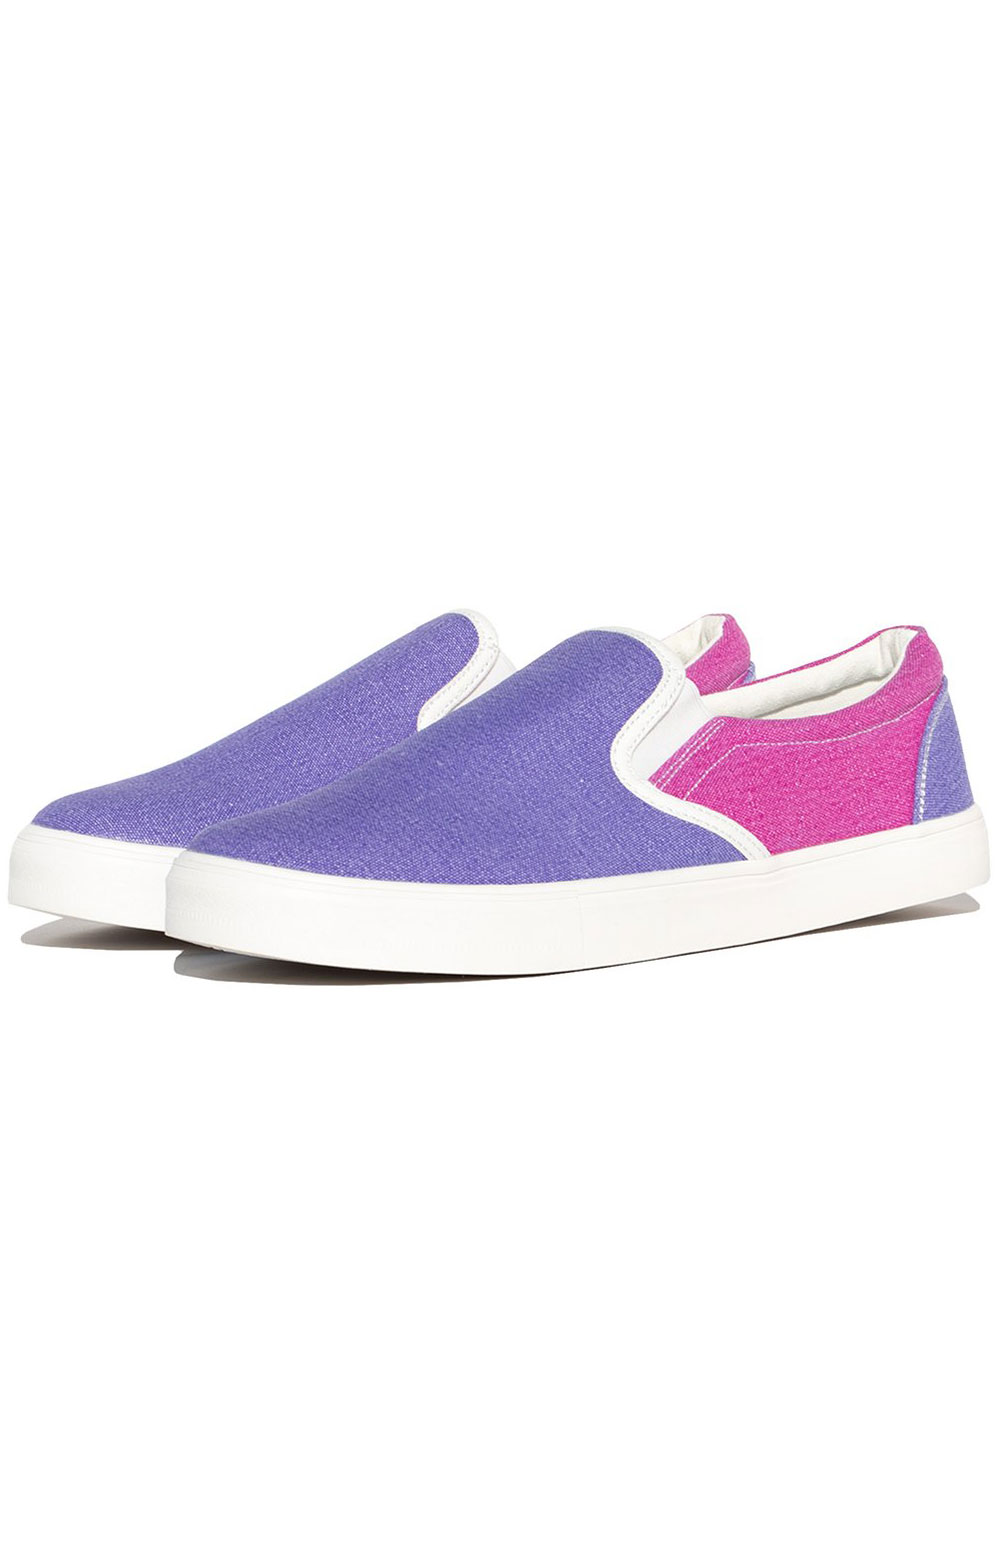 Lord Nermal UV Activated Slip-On Shoes - Blue/Fuschia 3